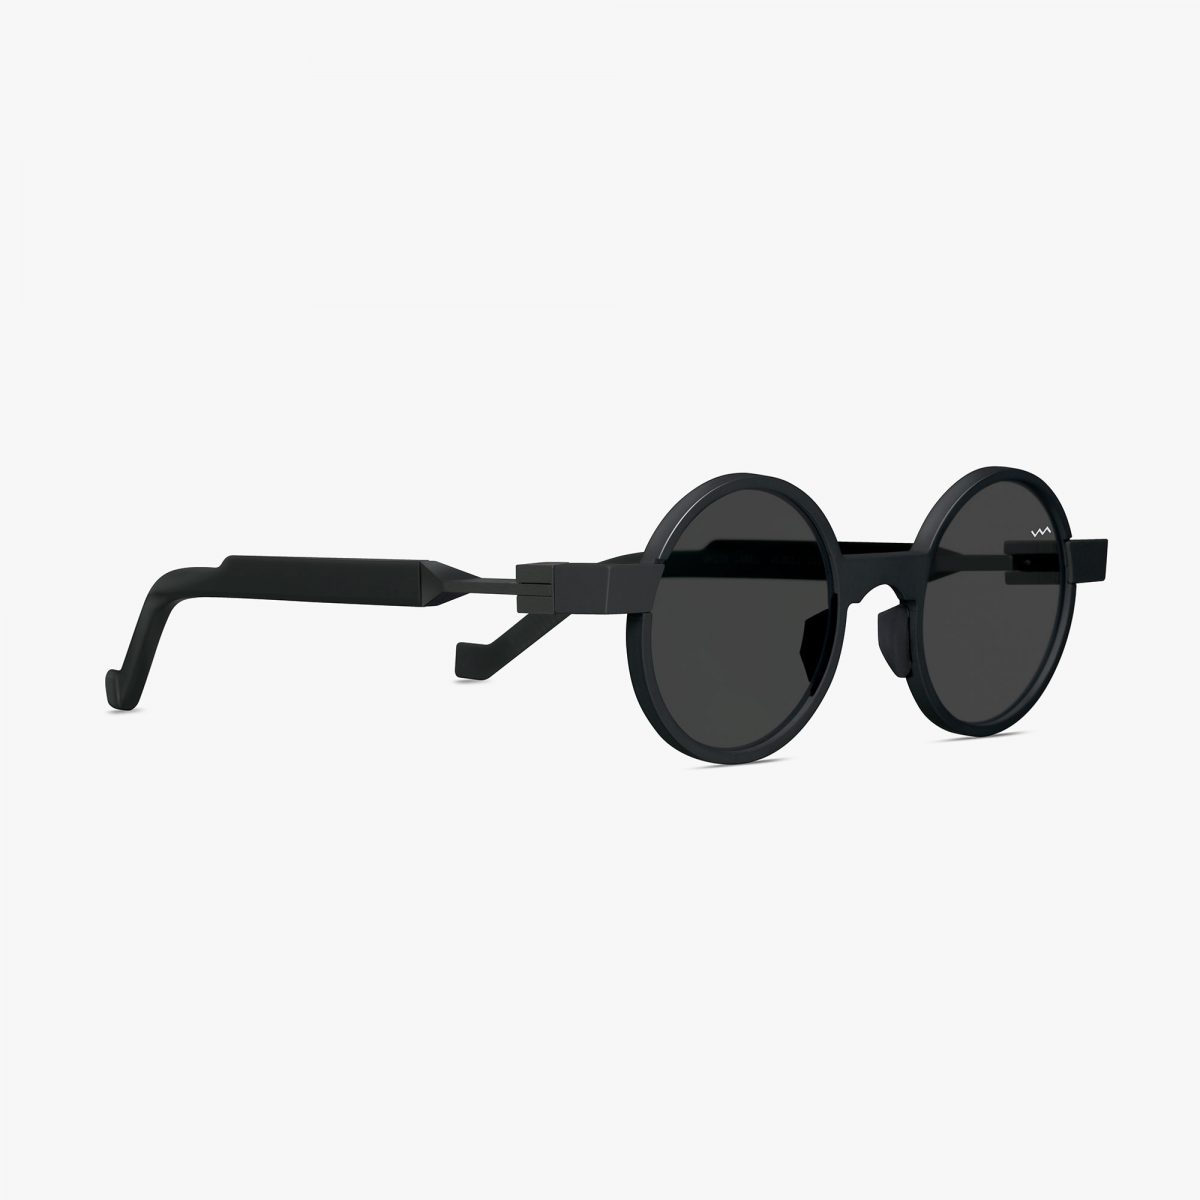 VAVA EYEWEAR SUNGLASS ONLINE SHOP WL0016 BLACK SIDE